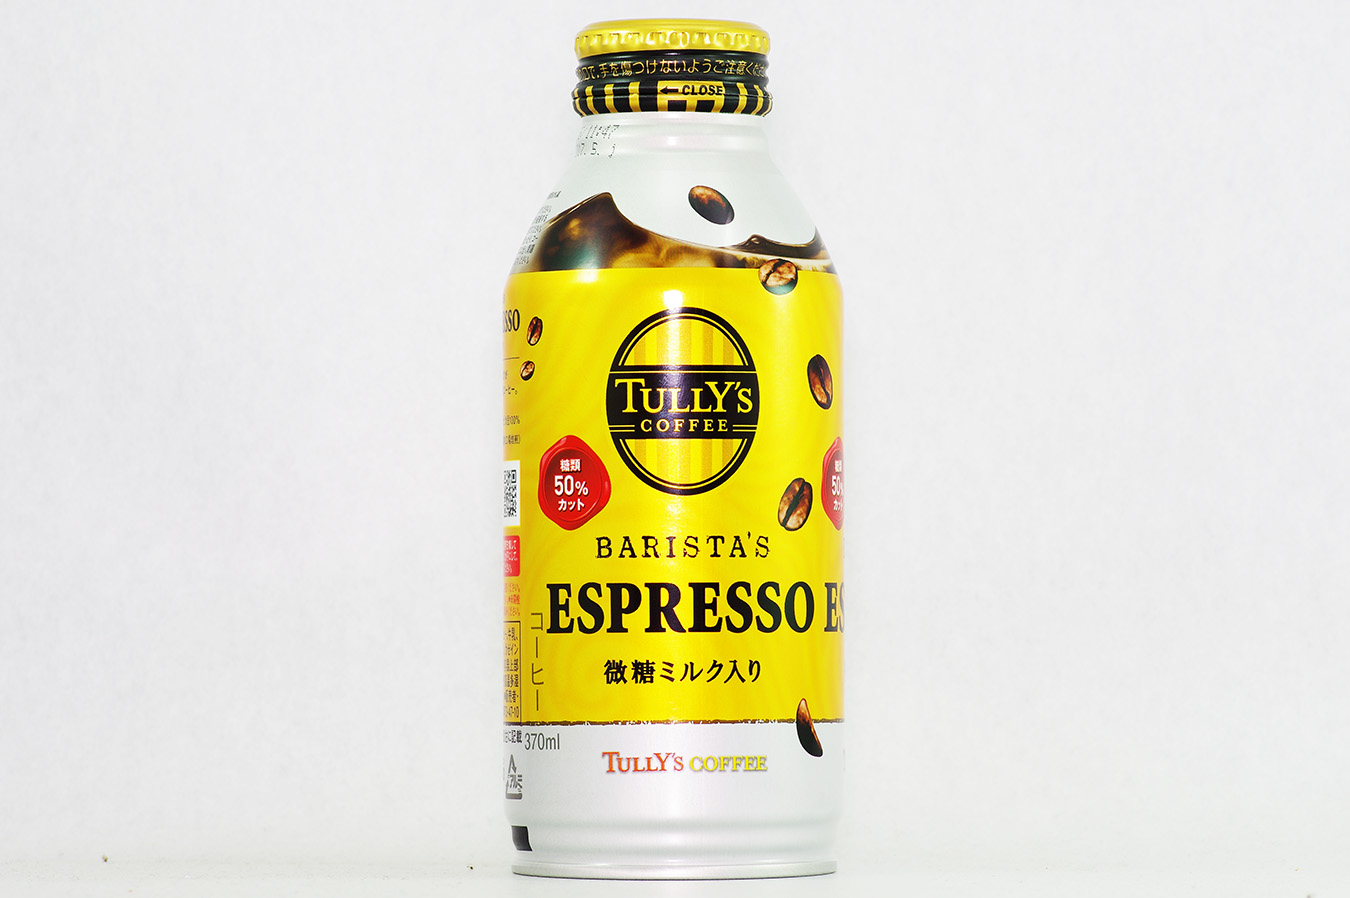 TULLY'S COFFEE BARISTA'S ESPRESSO 2016年